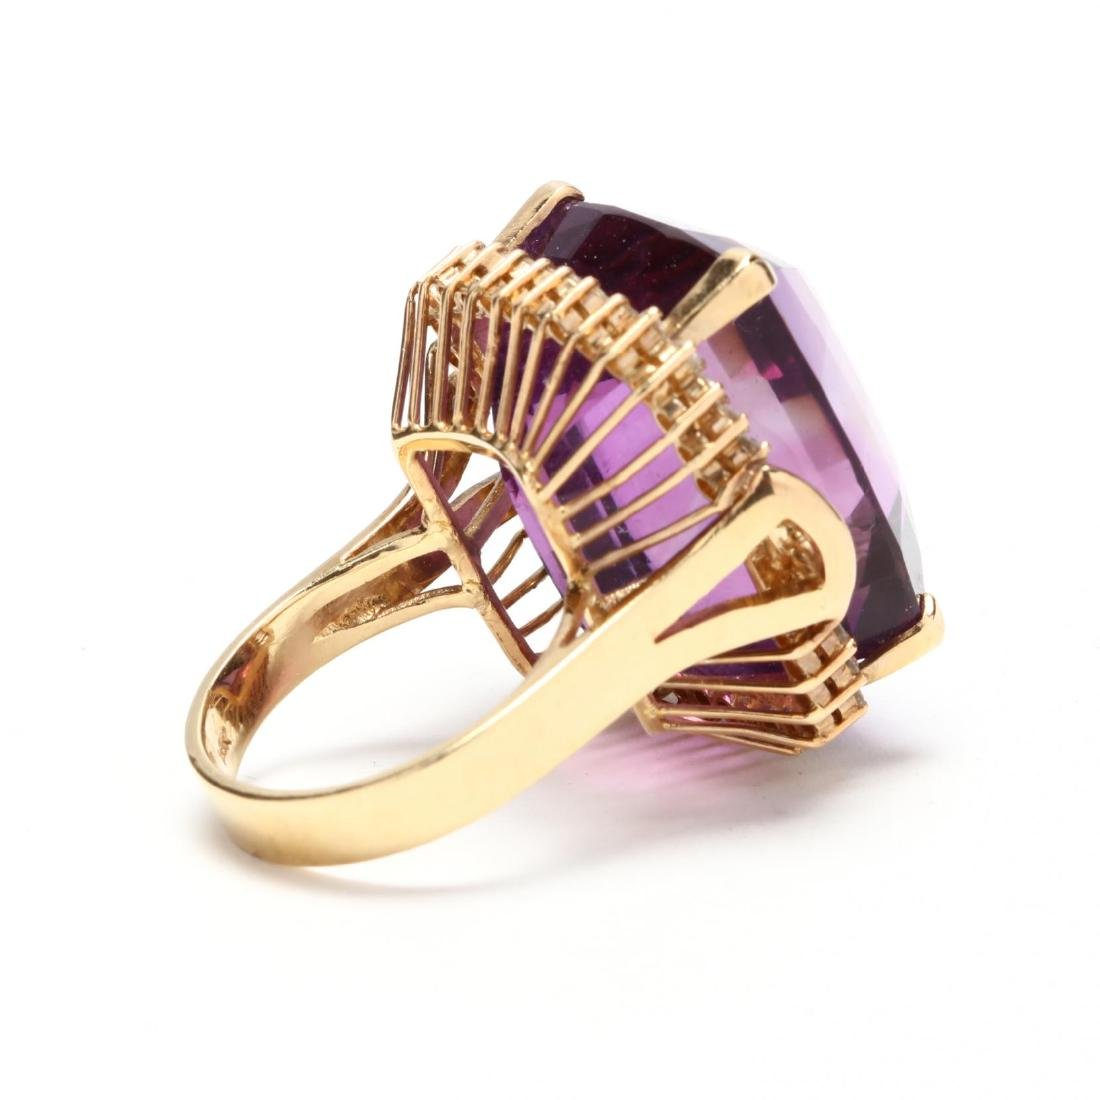 14KT Gold Amethyst and Diamond Ring - 3